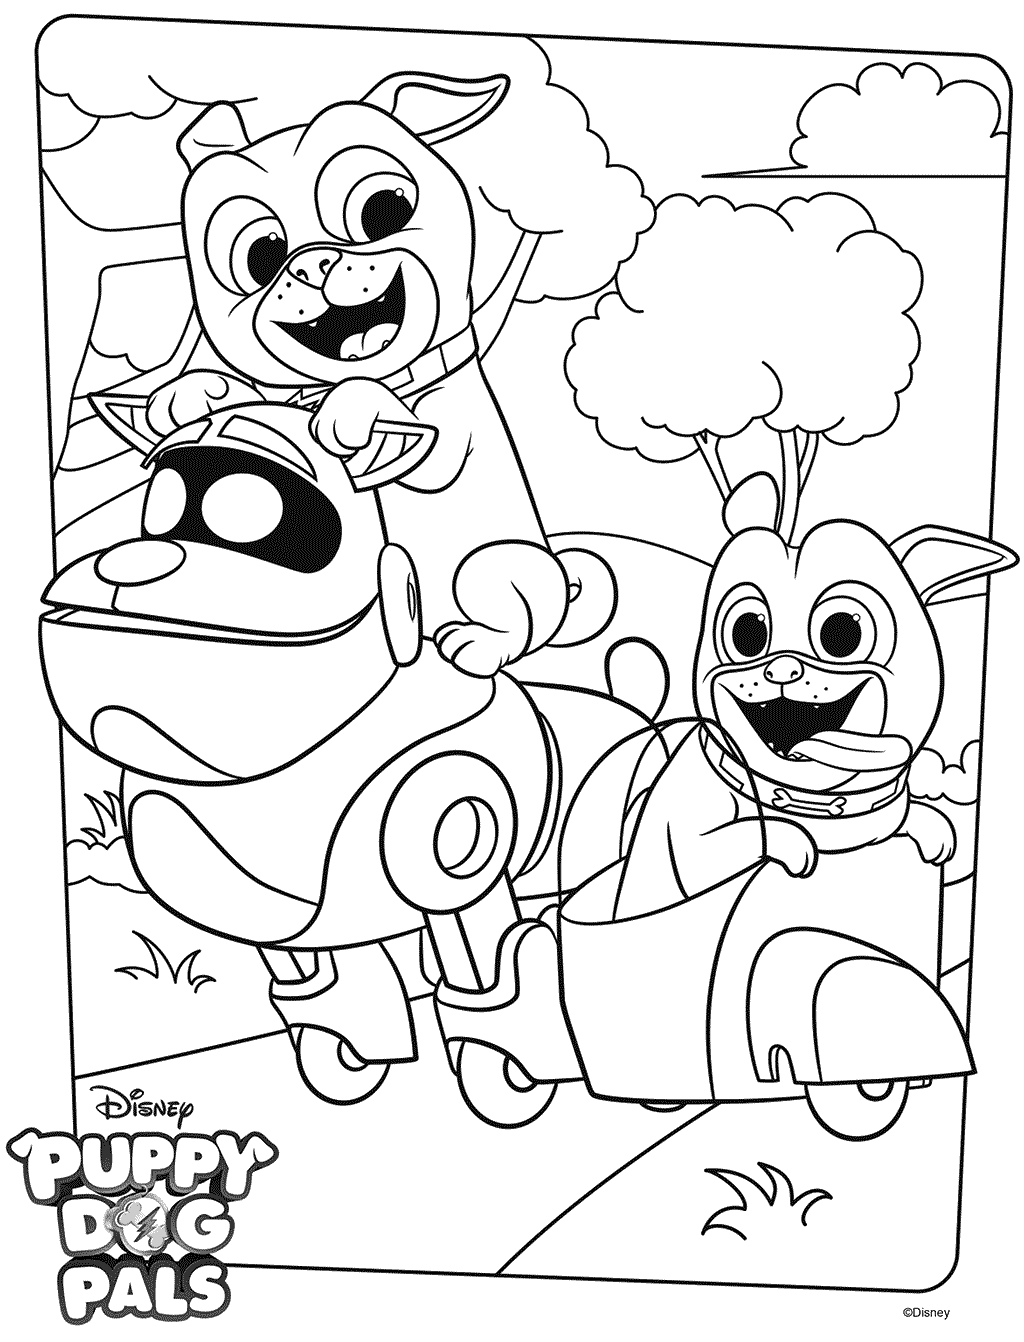 Puppy Dog Pals Coloring Pages Best Coloring Pages For Kids Puppy Coloring Pages Dog Coloring Page Cartoon Coloring Pages